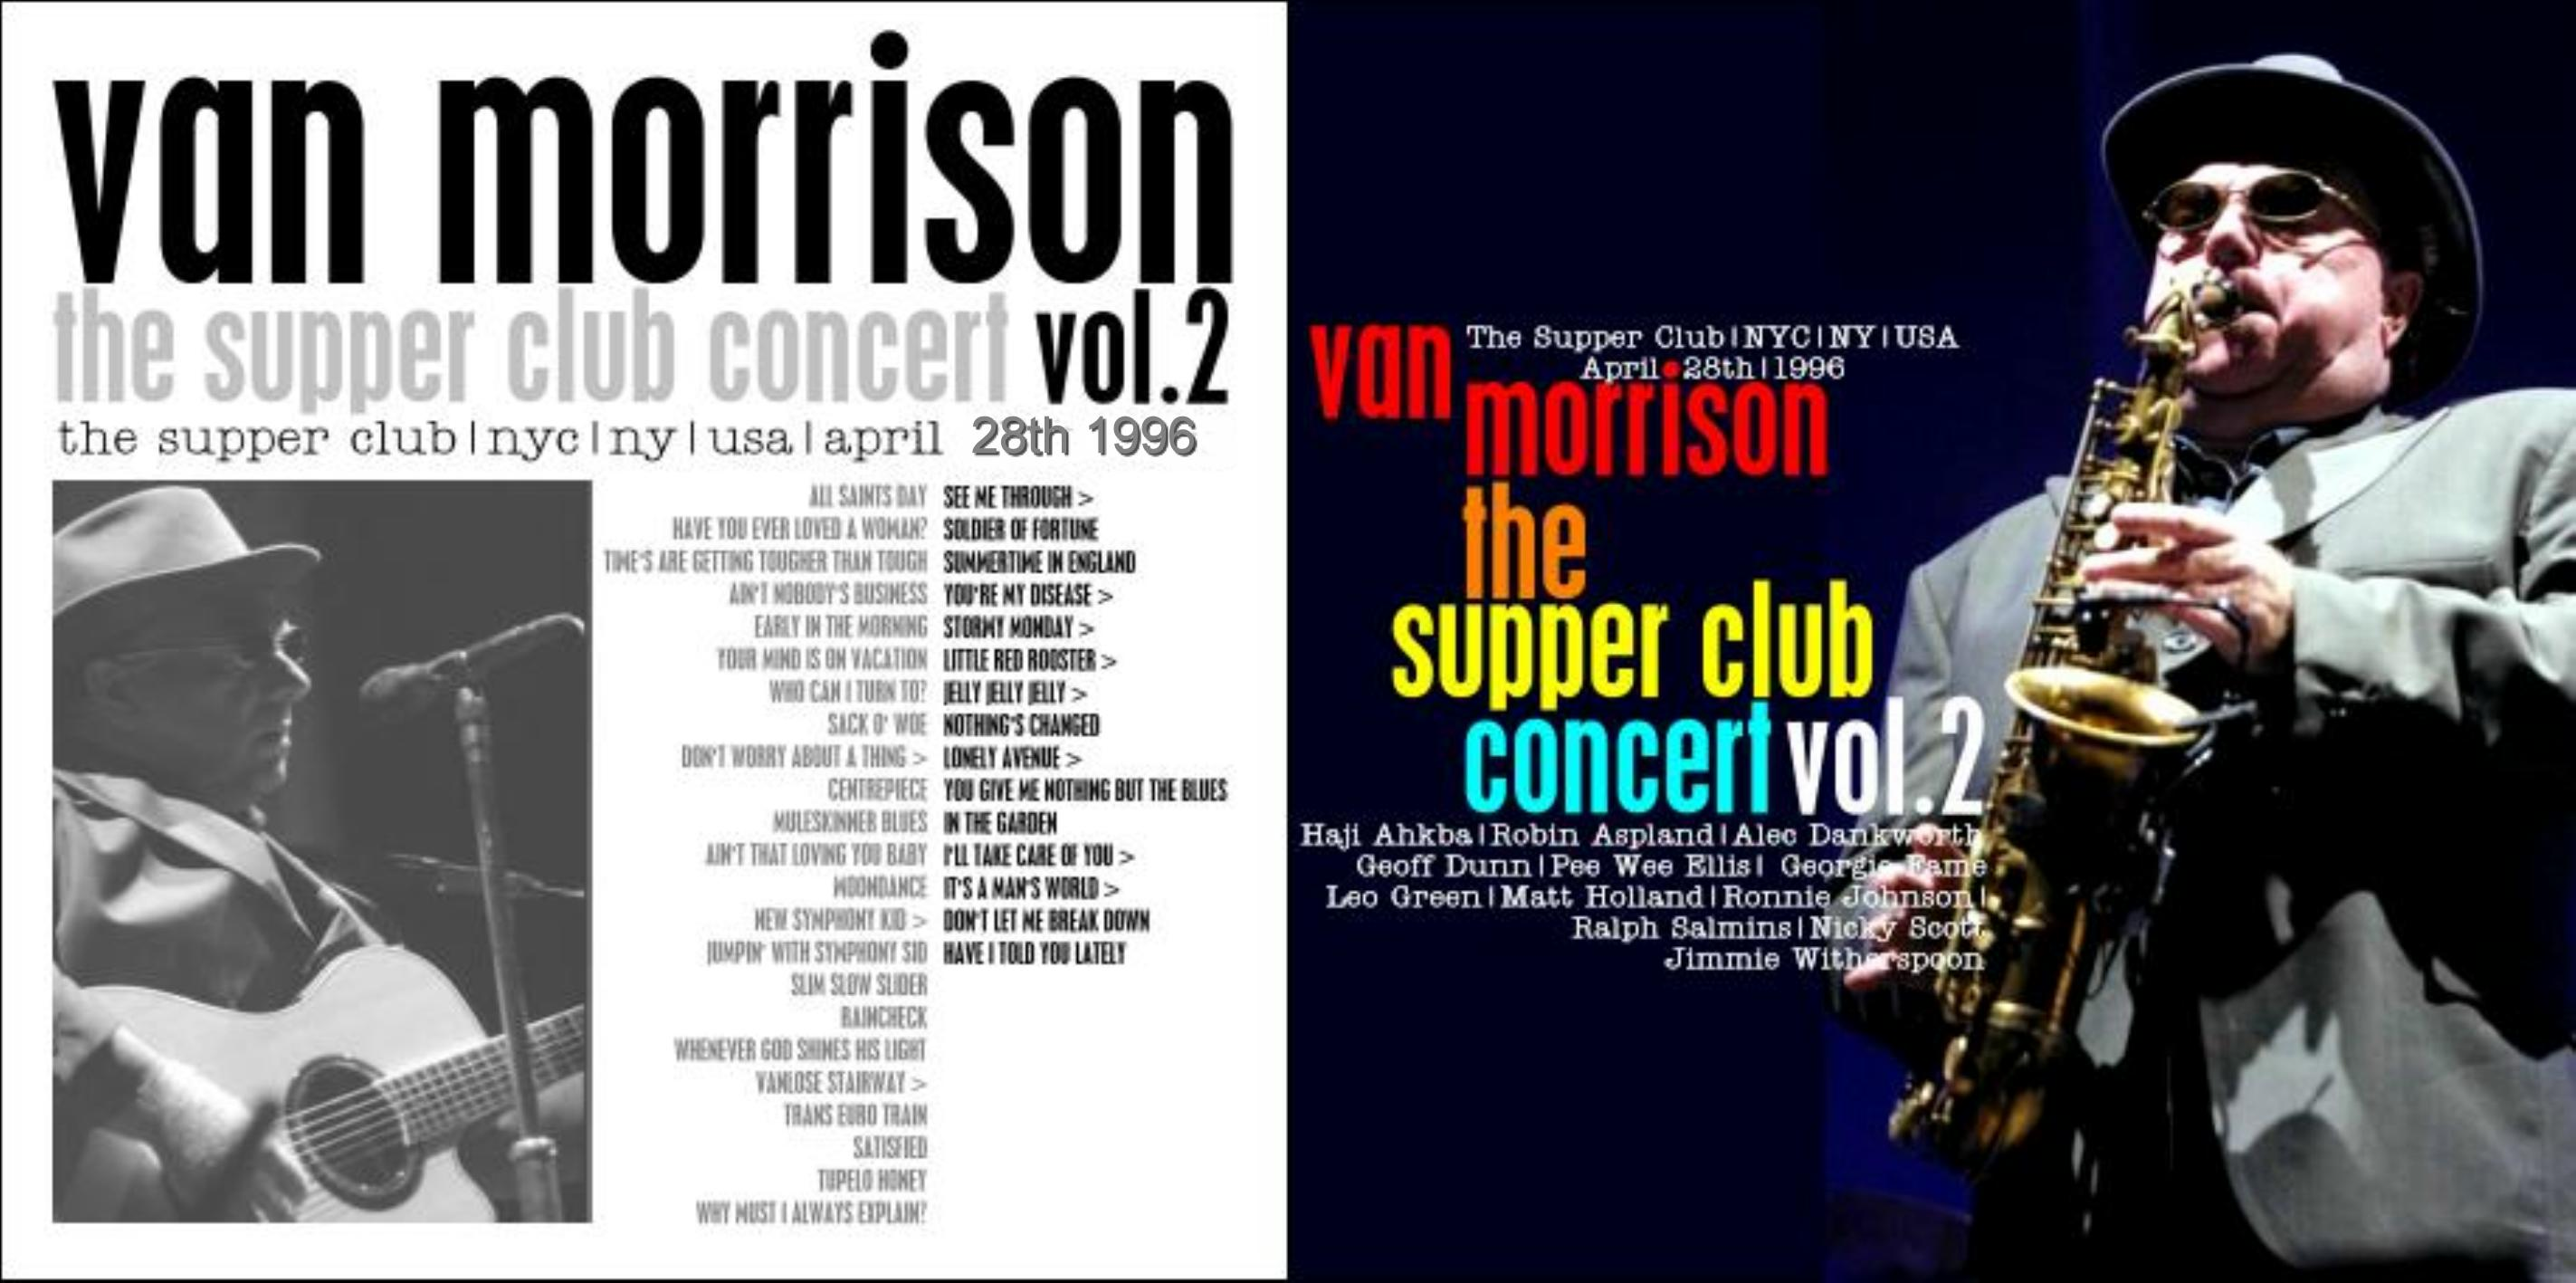 VanMorrison1996-04-28_05-01TheSupperClubNYC.jpg